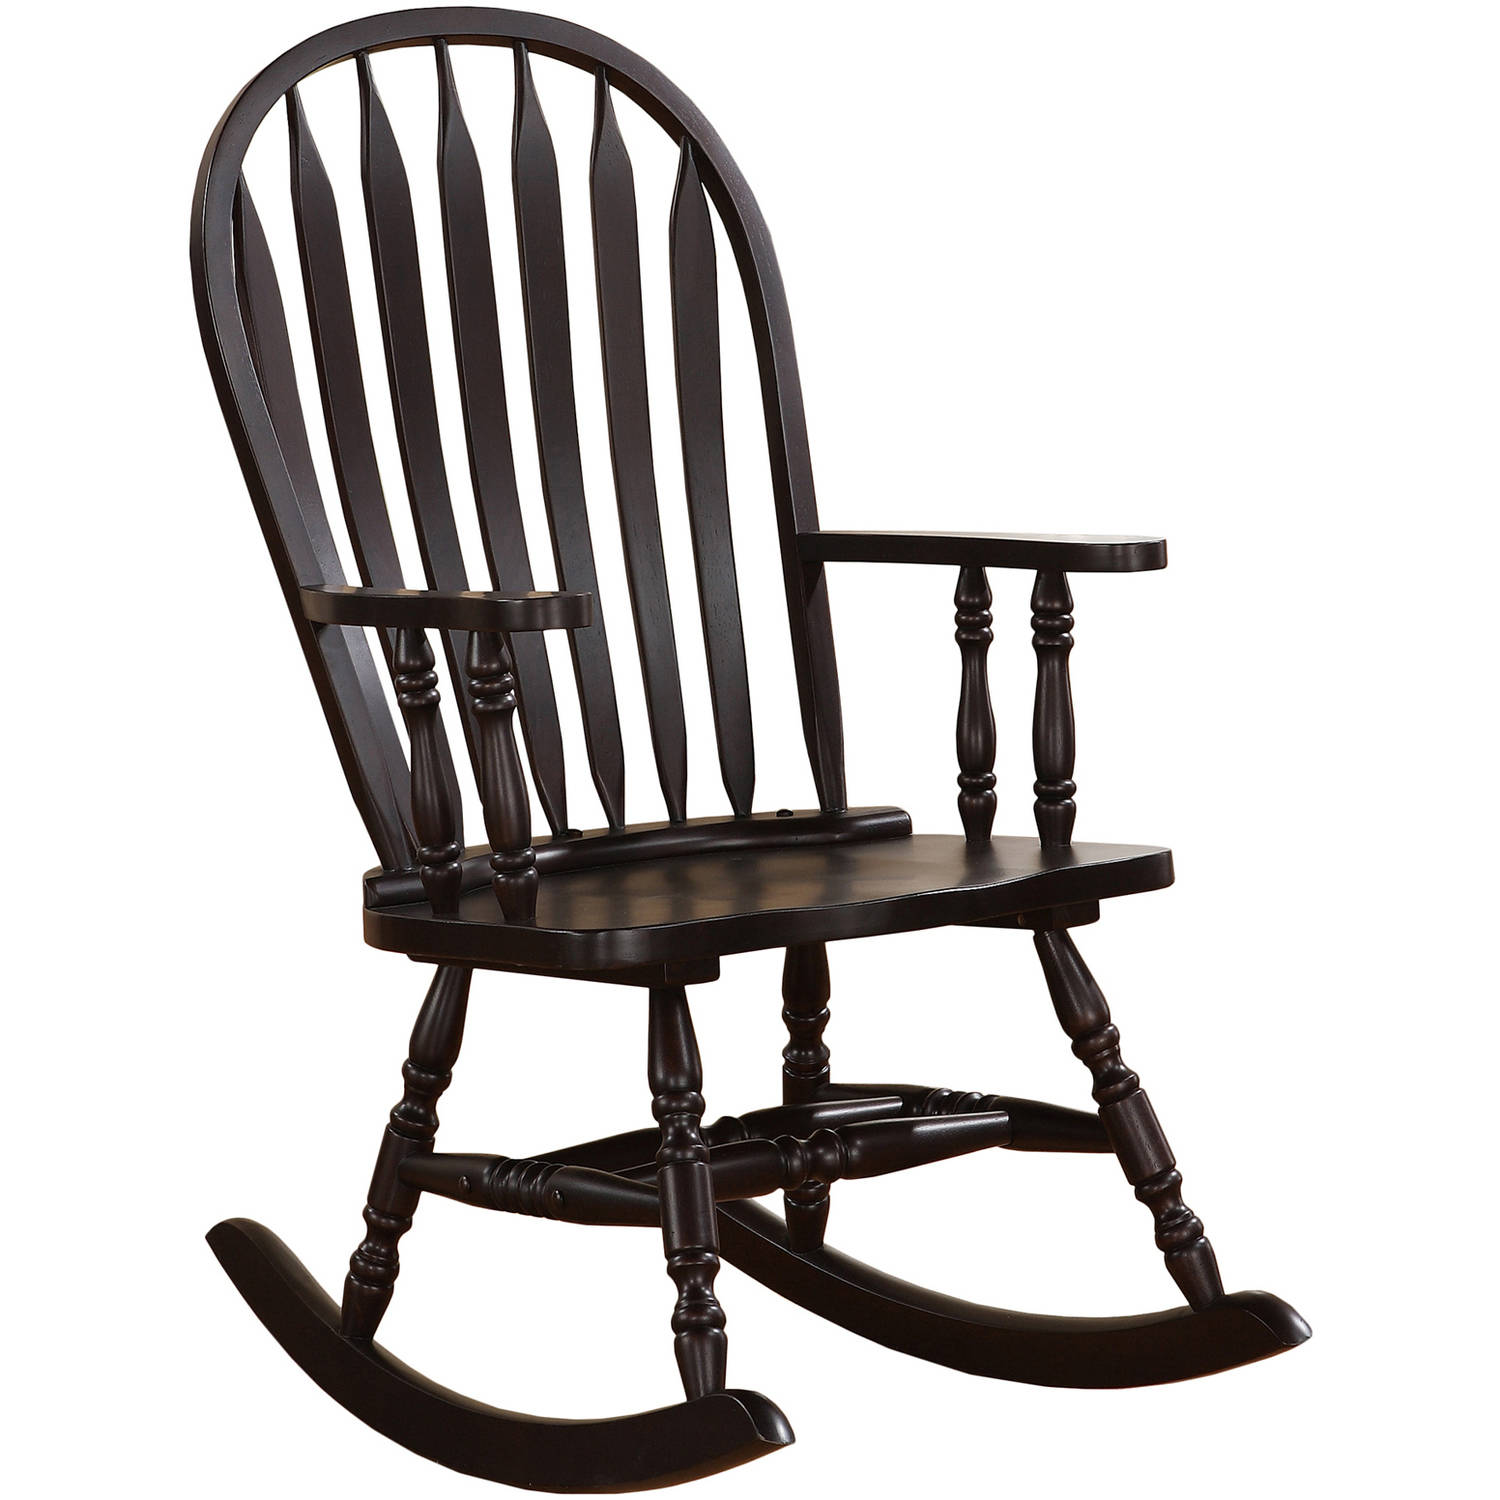 Coaster Millwood Indoor Rocking Chair by Coaster Company